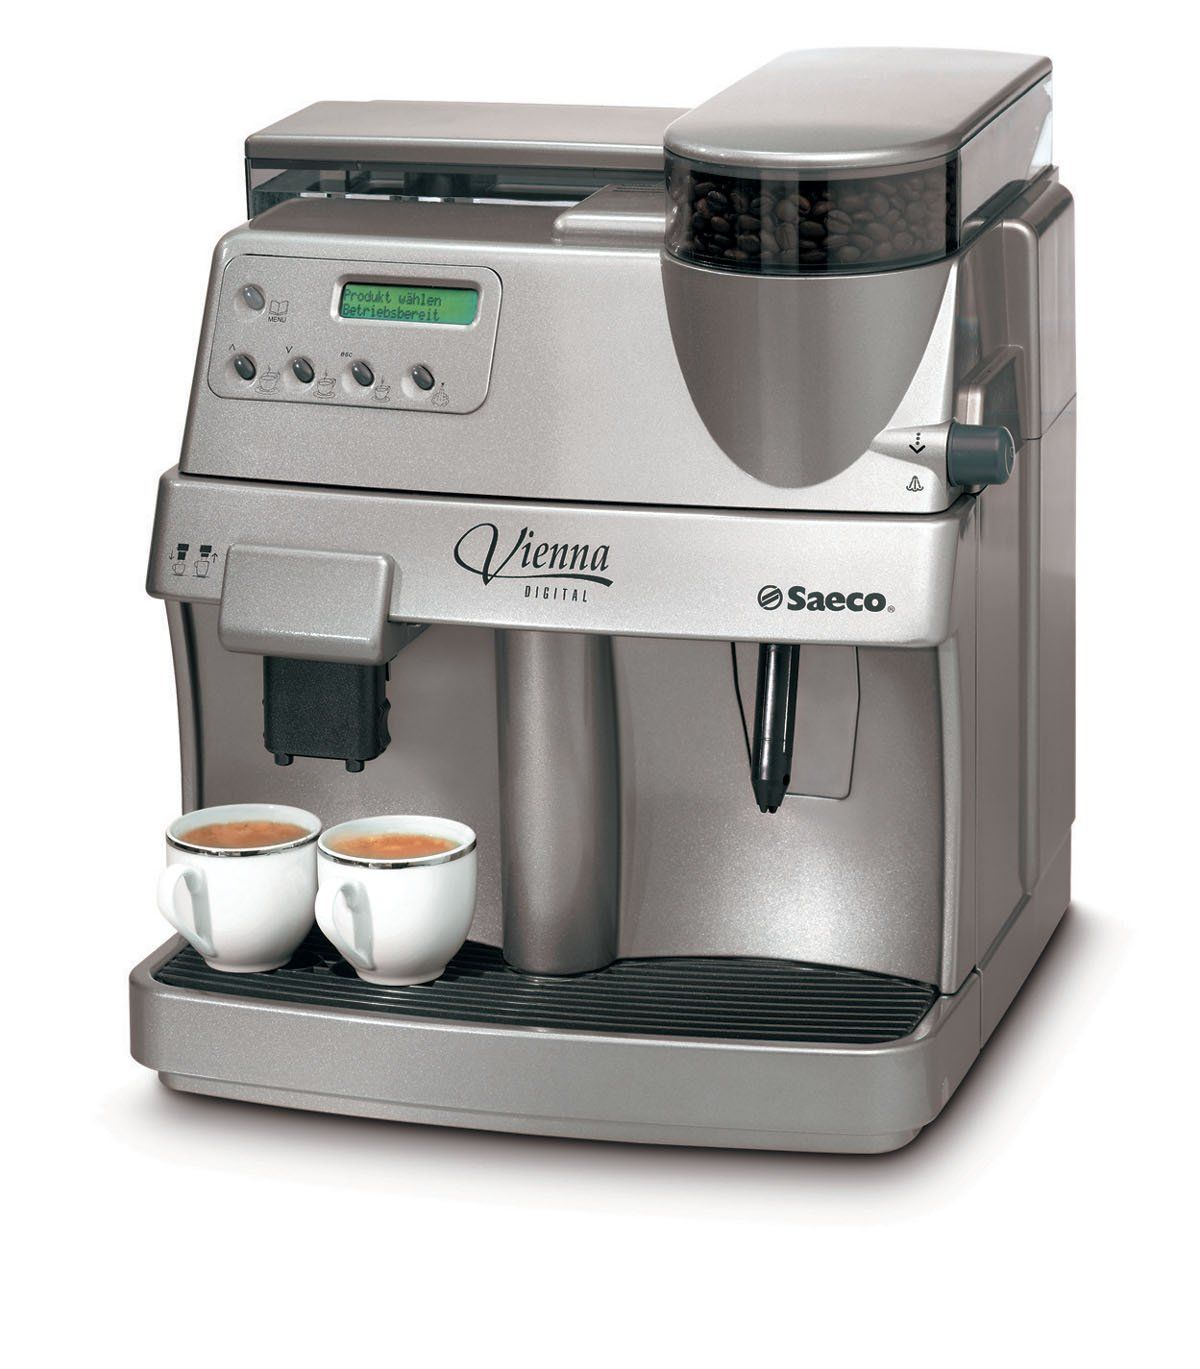 For Home Coffee maker machine, Home coffee machines